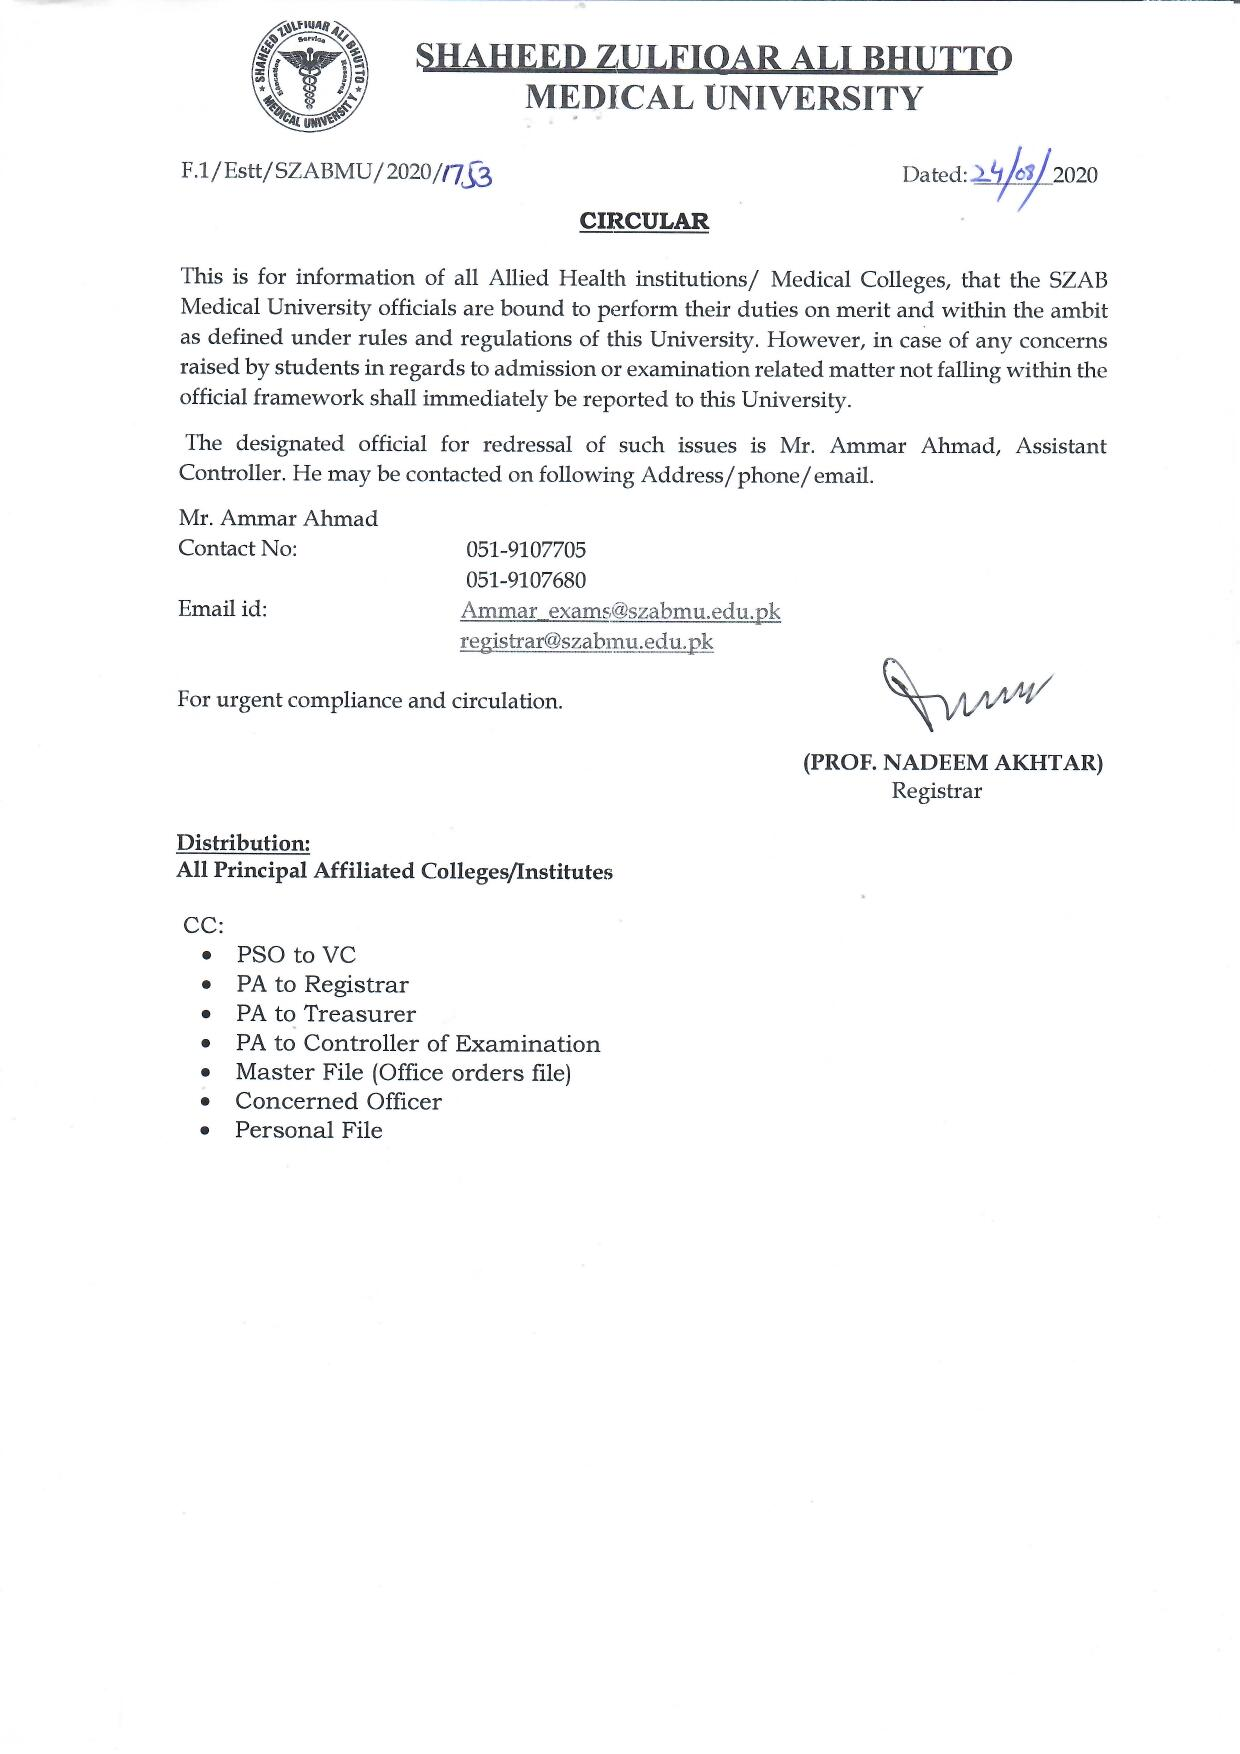 Circular Focal Person for Allied Health Institutions, Medical & Dental Colleges